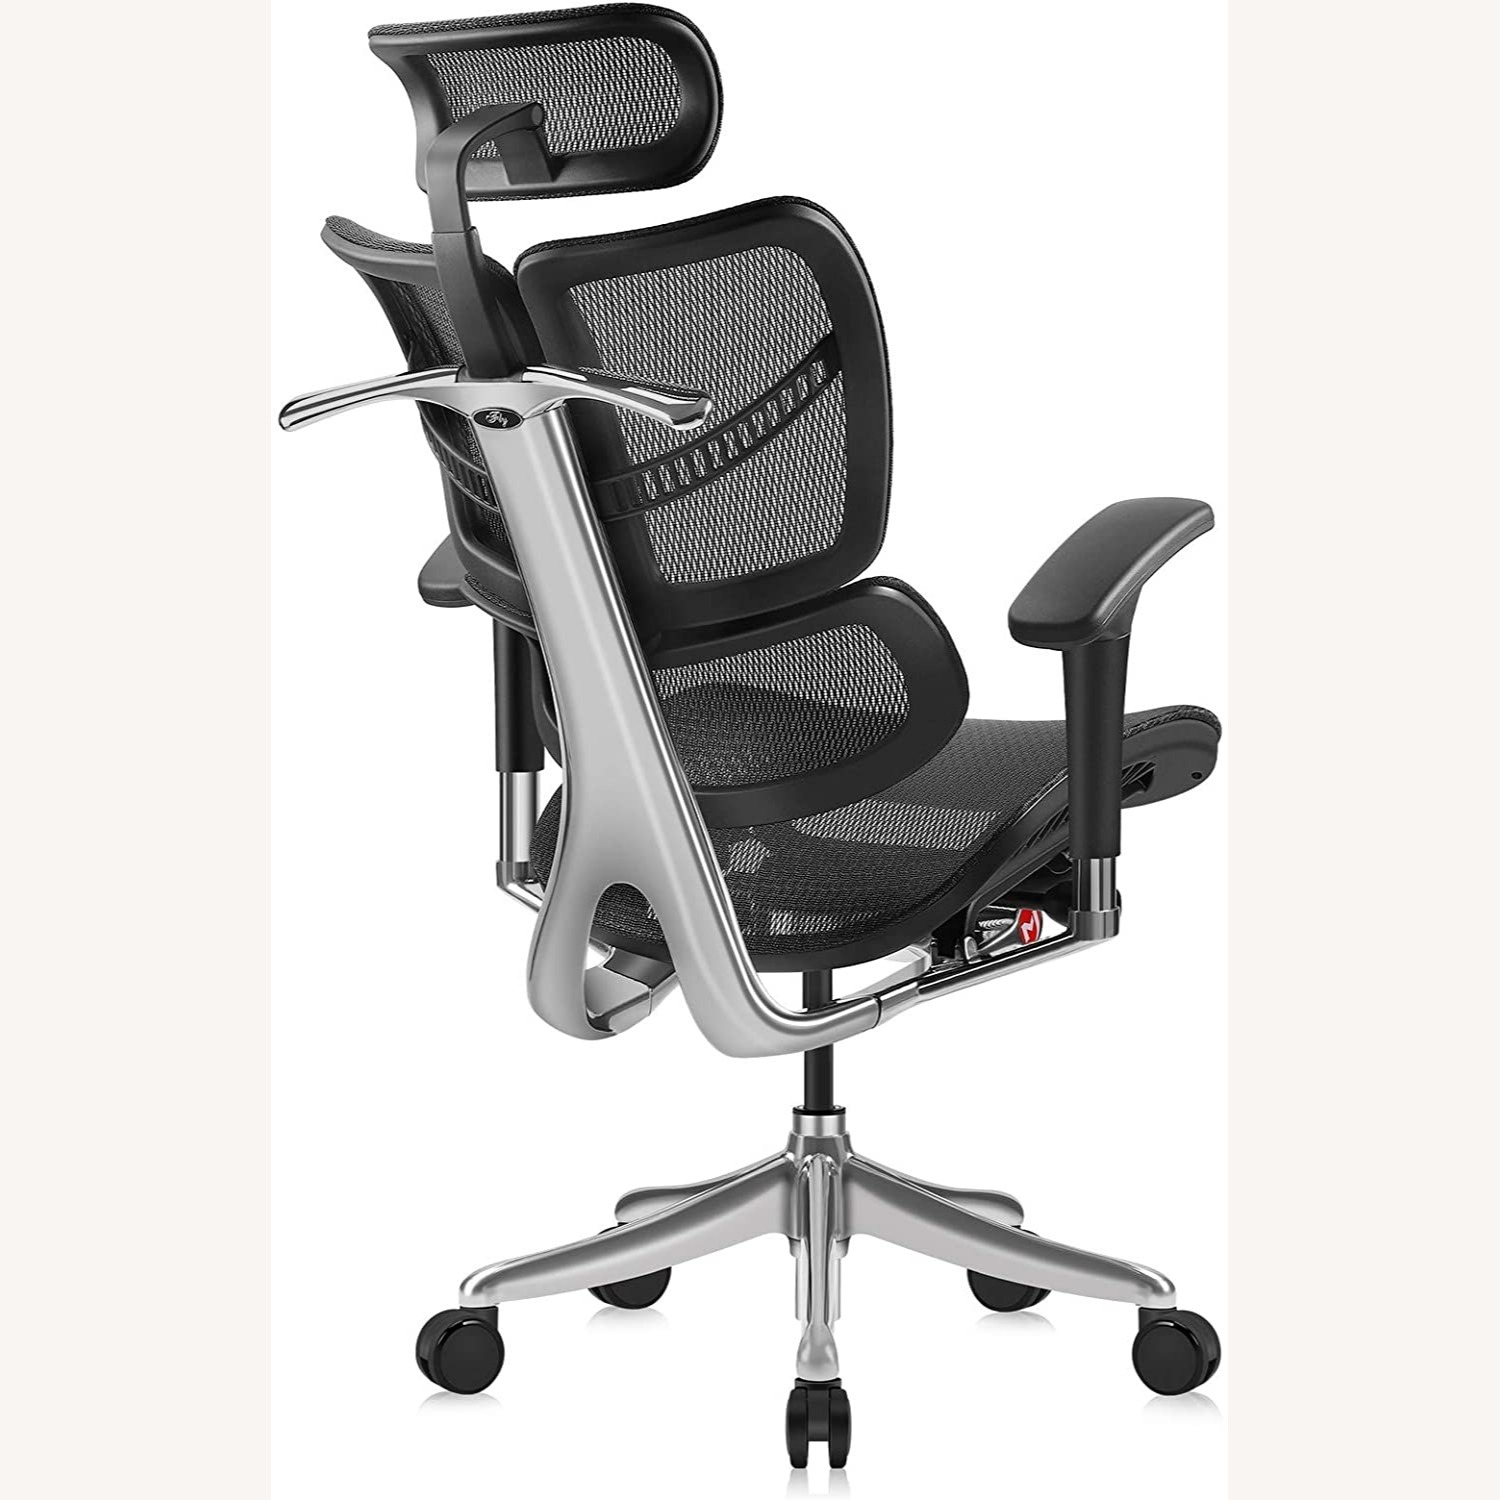 Ergonomic Office Chair with Headrest - image-2